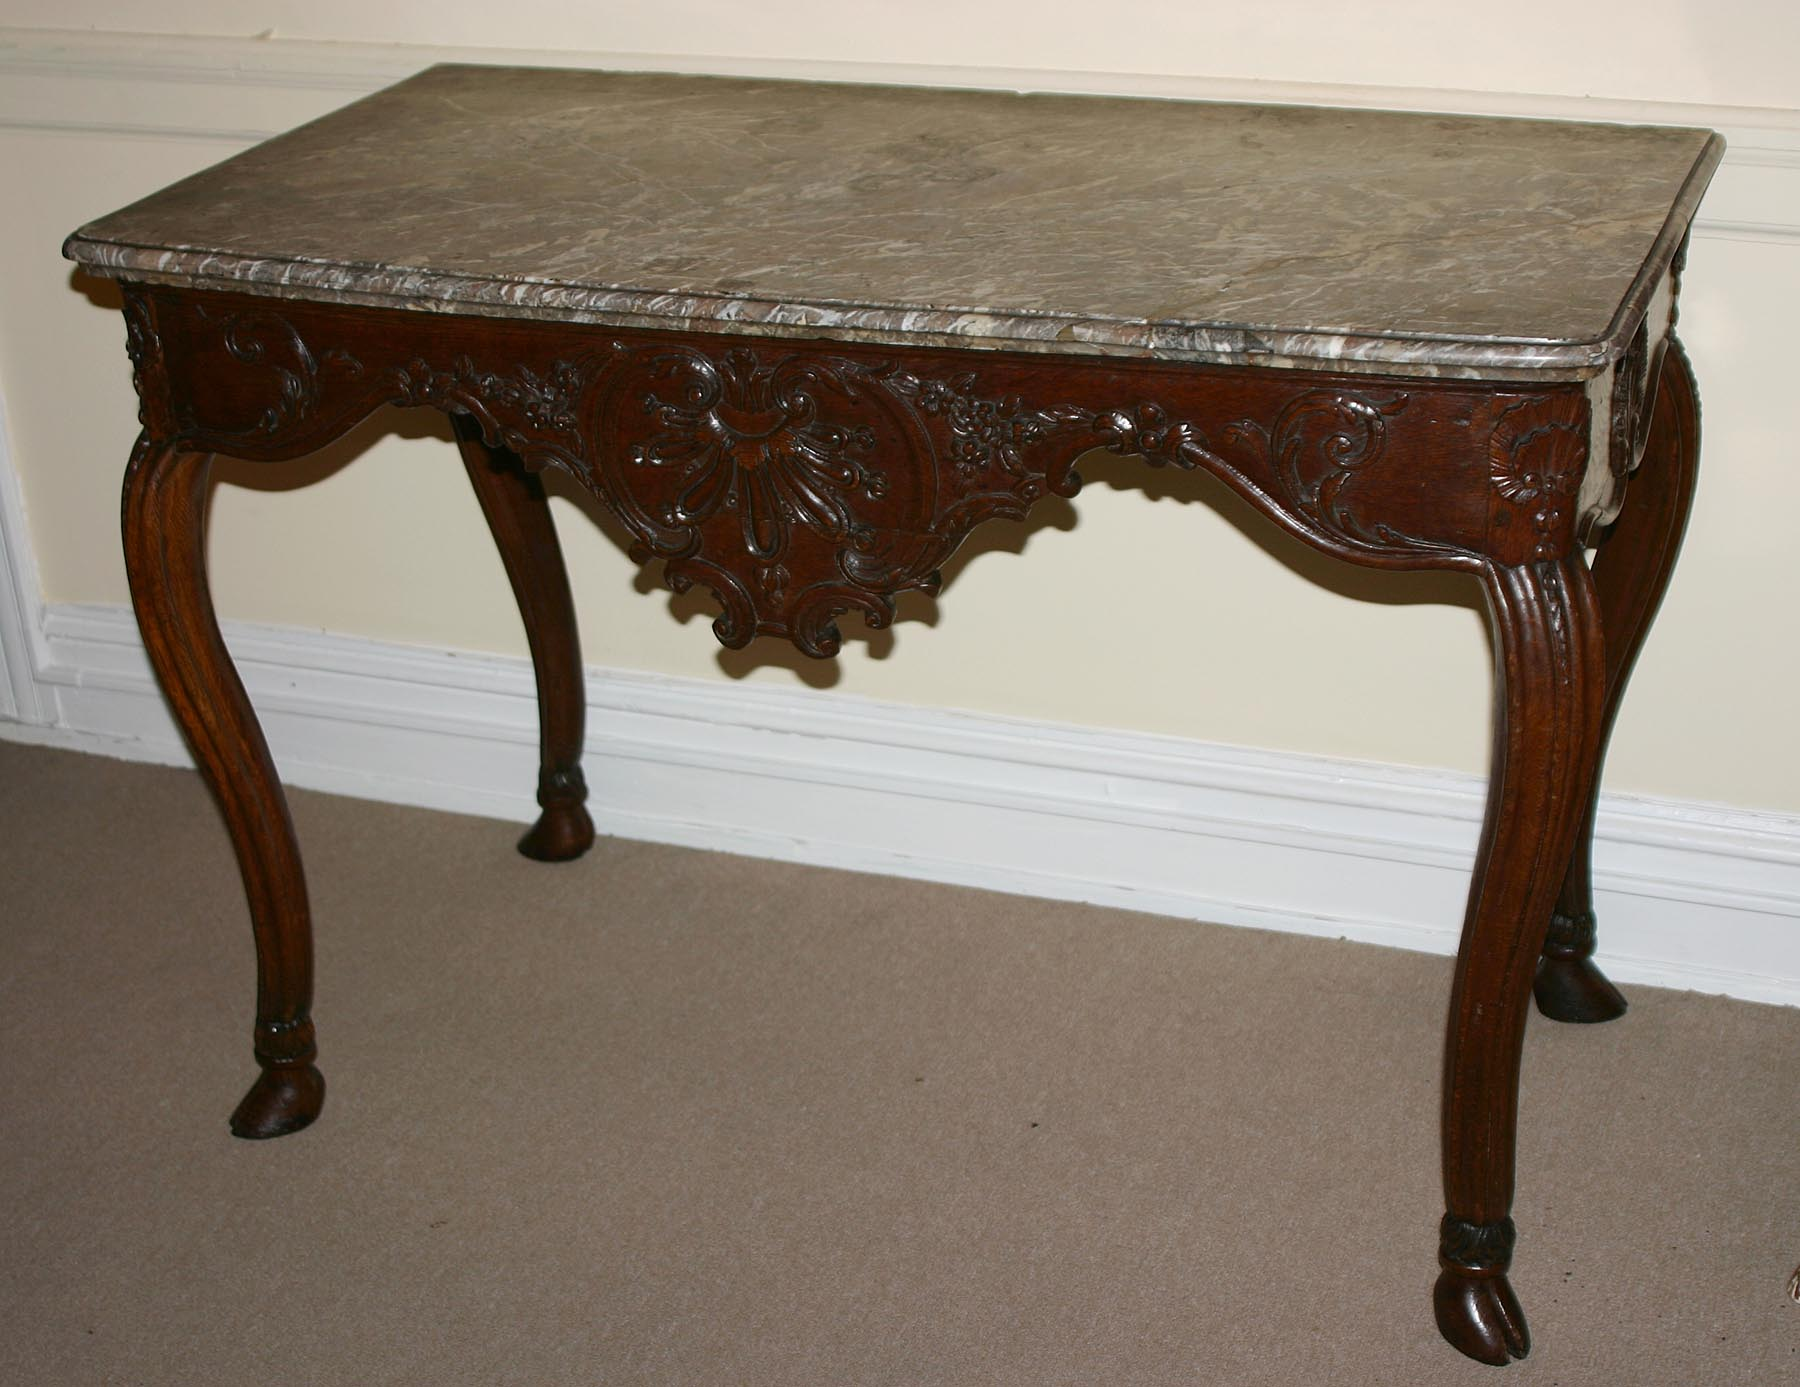 very fine french provincial regence period console table for sale classifieds. Black Bedroom Furniture Sets. Home Design Ideas